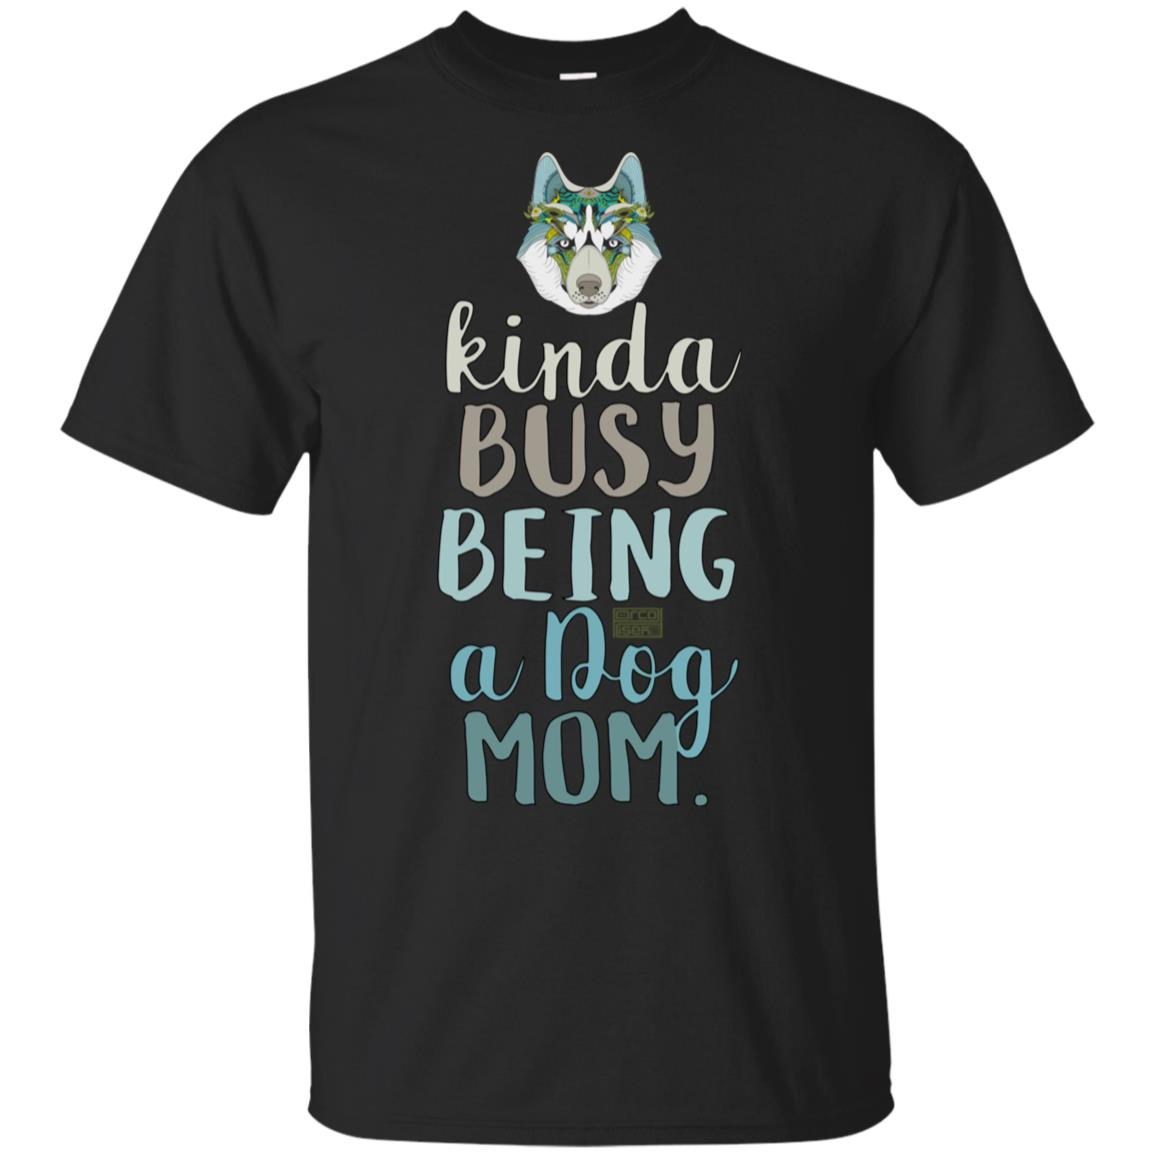 Floral Funny Busy Being A Dog Mom Mother's Day Unisex Short Sleeve